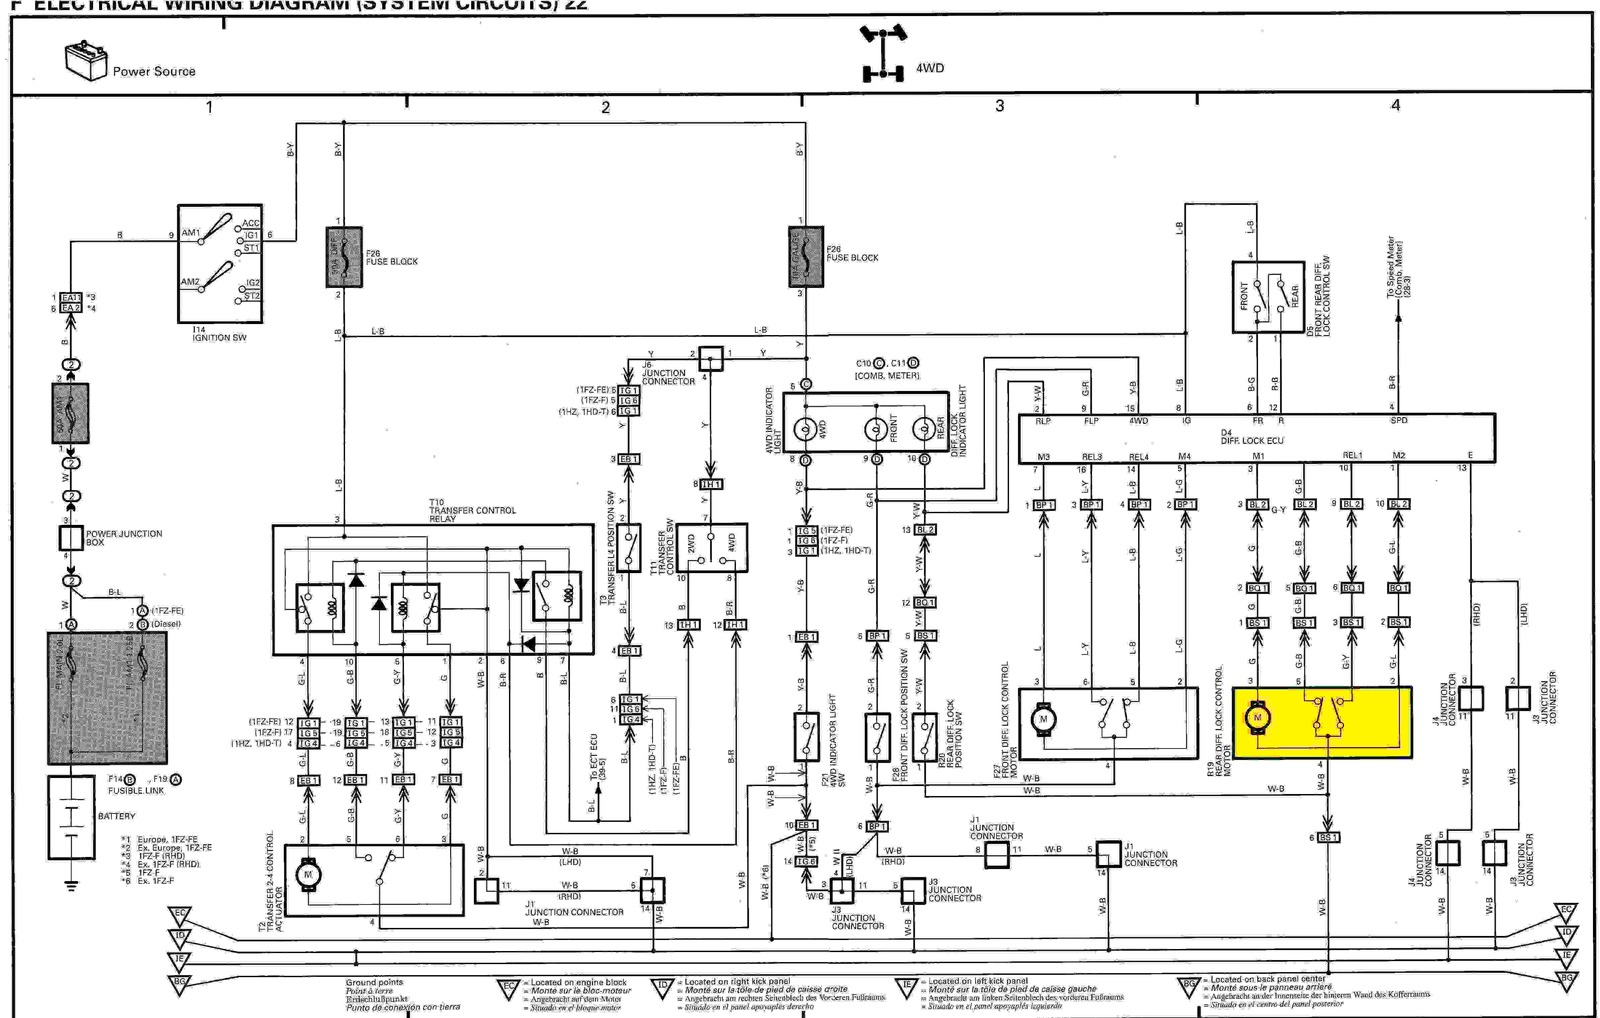 2003 Saab 9 3 Speaker Wiring Diagram in addition Mazda 6 Bose  lifier Wiring Diagram further Saturn Radio Wiring Color Code besides 1997 Ford F250 Radio Wiring Diagram moreover 2000 Eclipse Wiring Diagram. on factory car stereo wiring diagrams